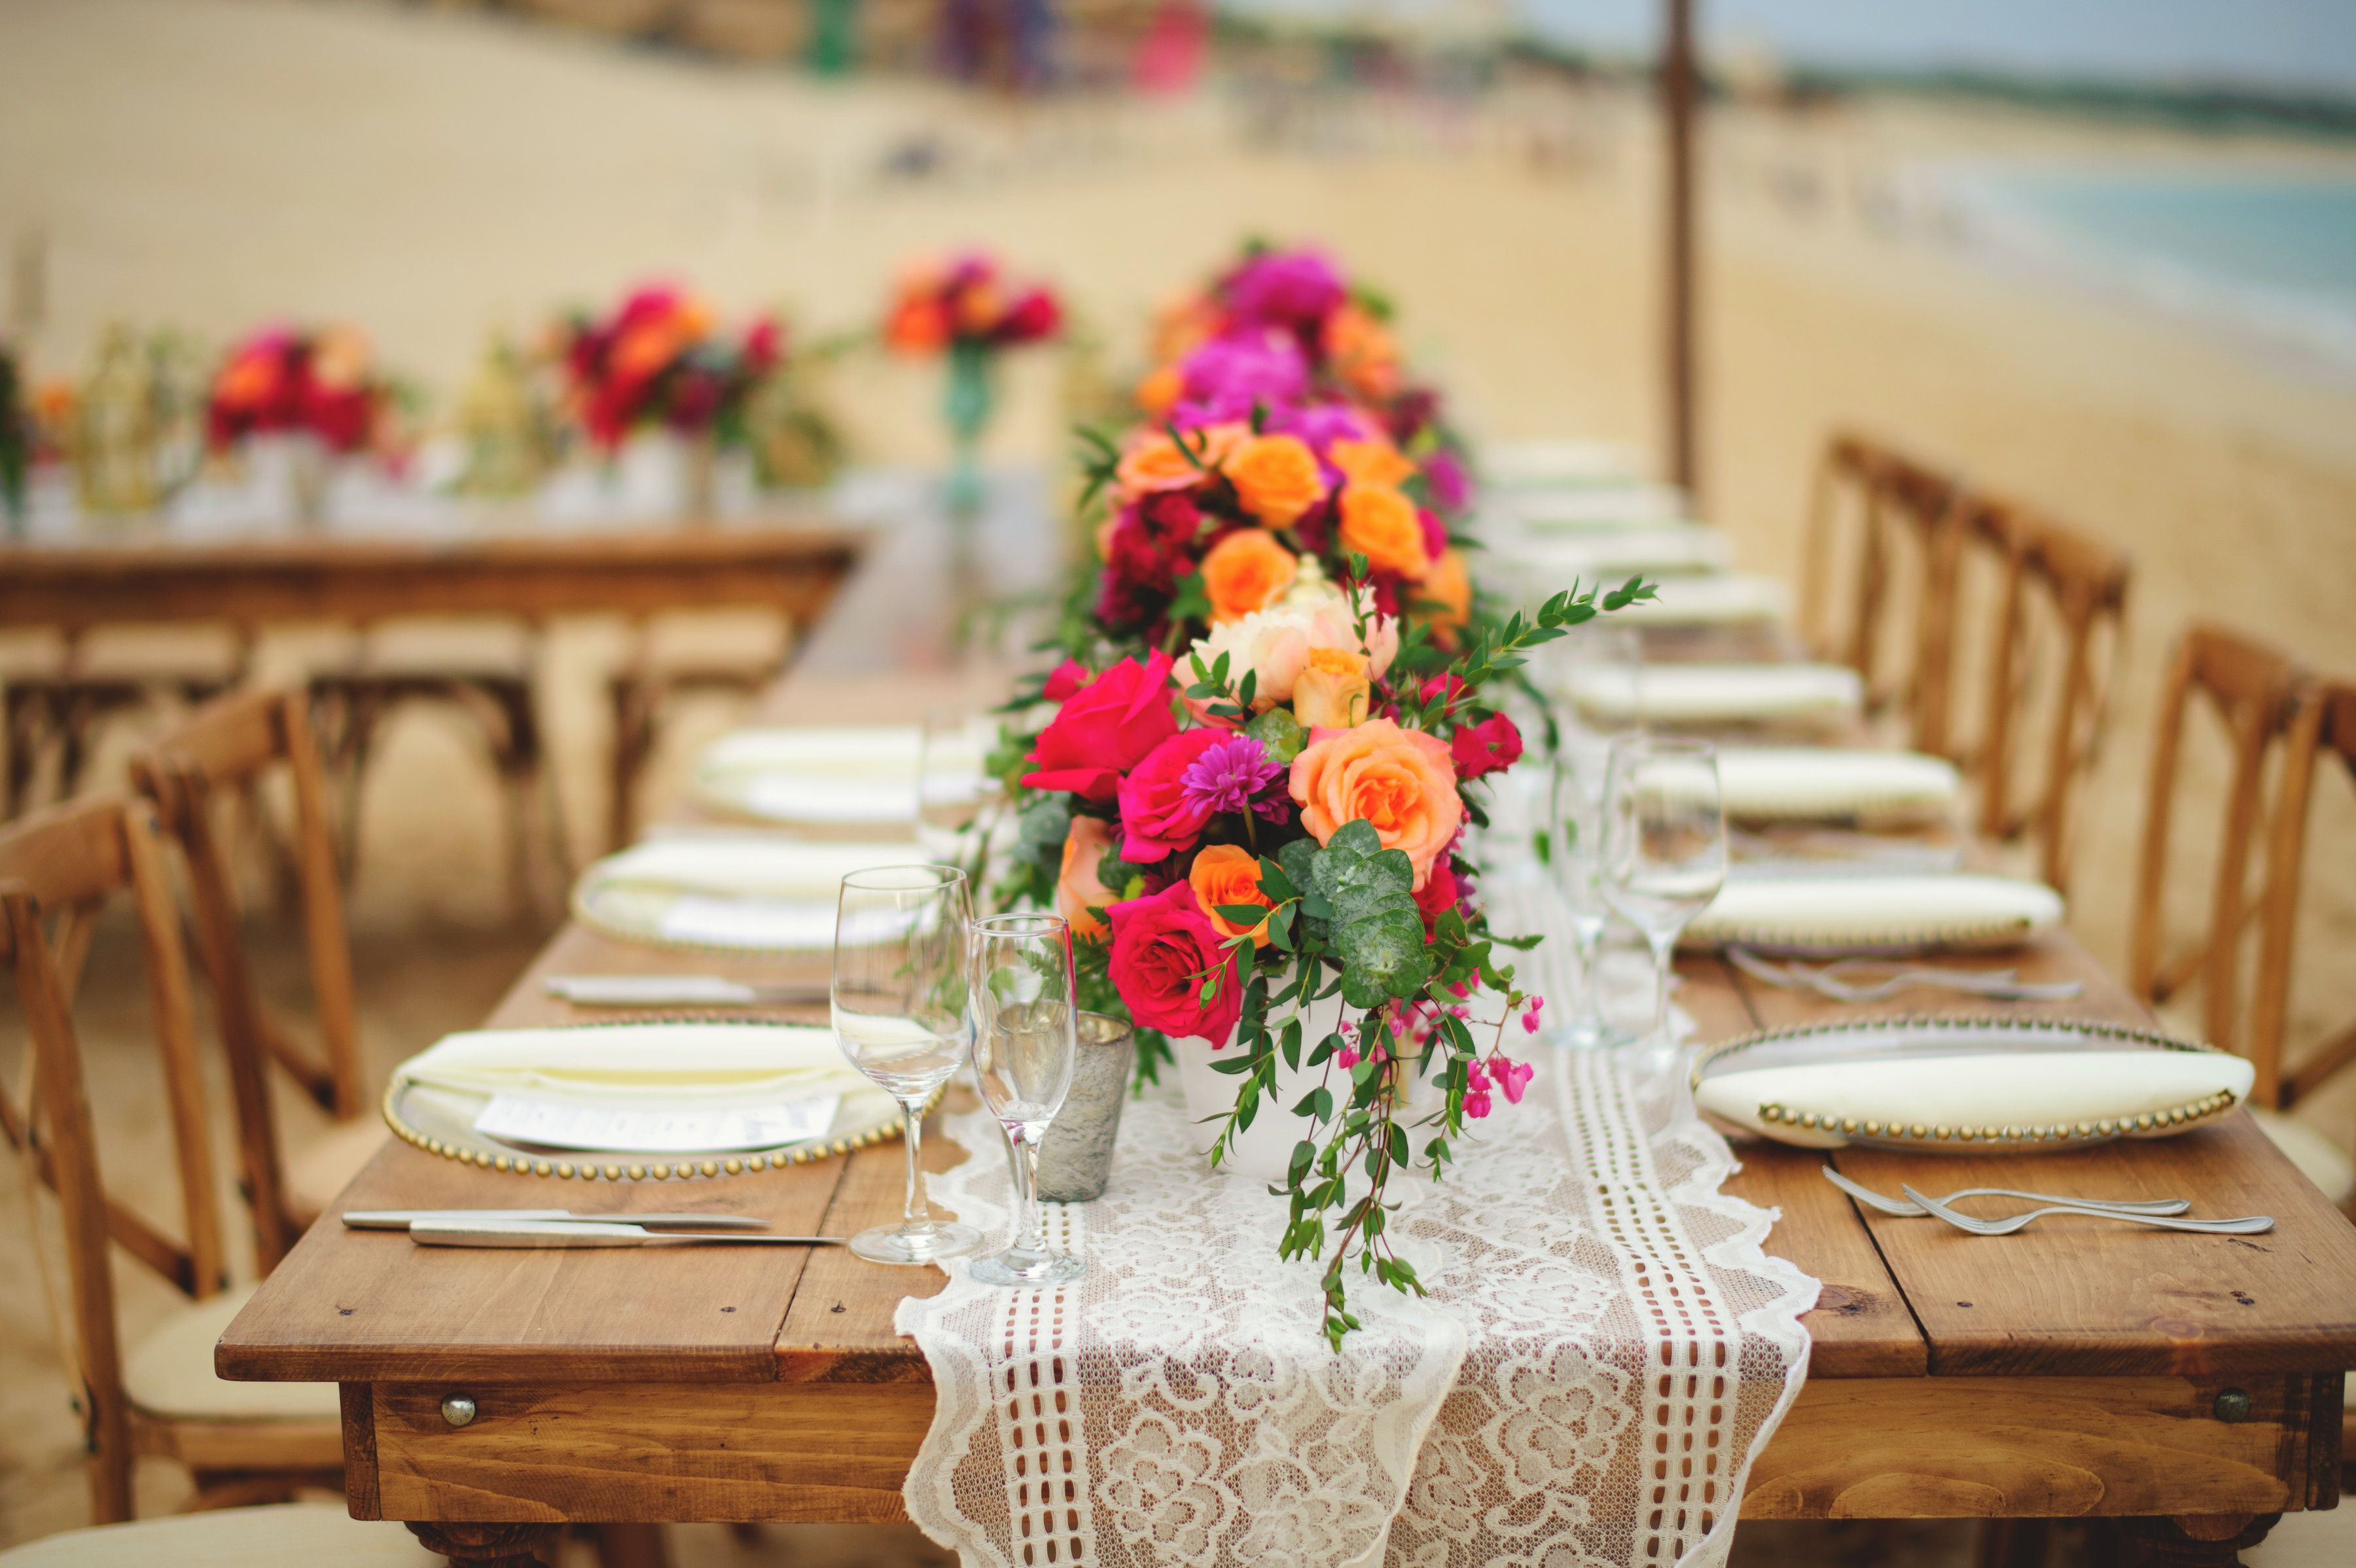 Reception Wedding and design by Cabo Wedding Services at Villa la Estancia in Cabo San Lucas. Table arrangements with Peonies and Roses